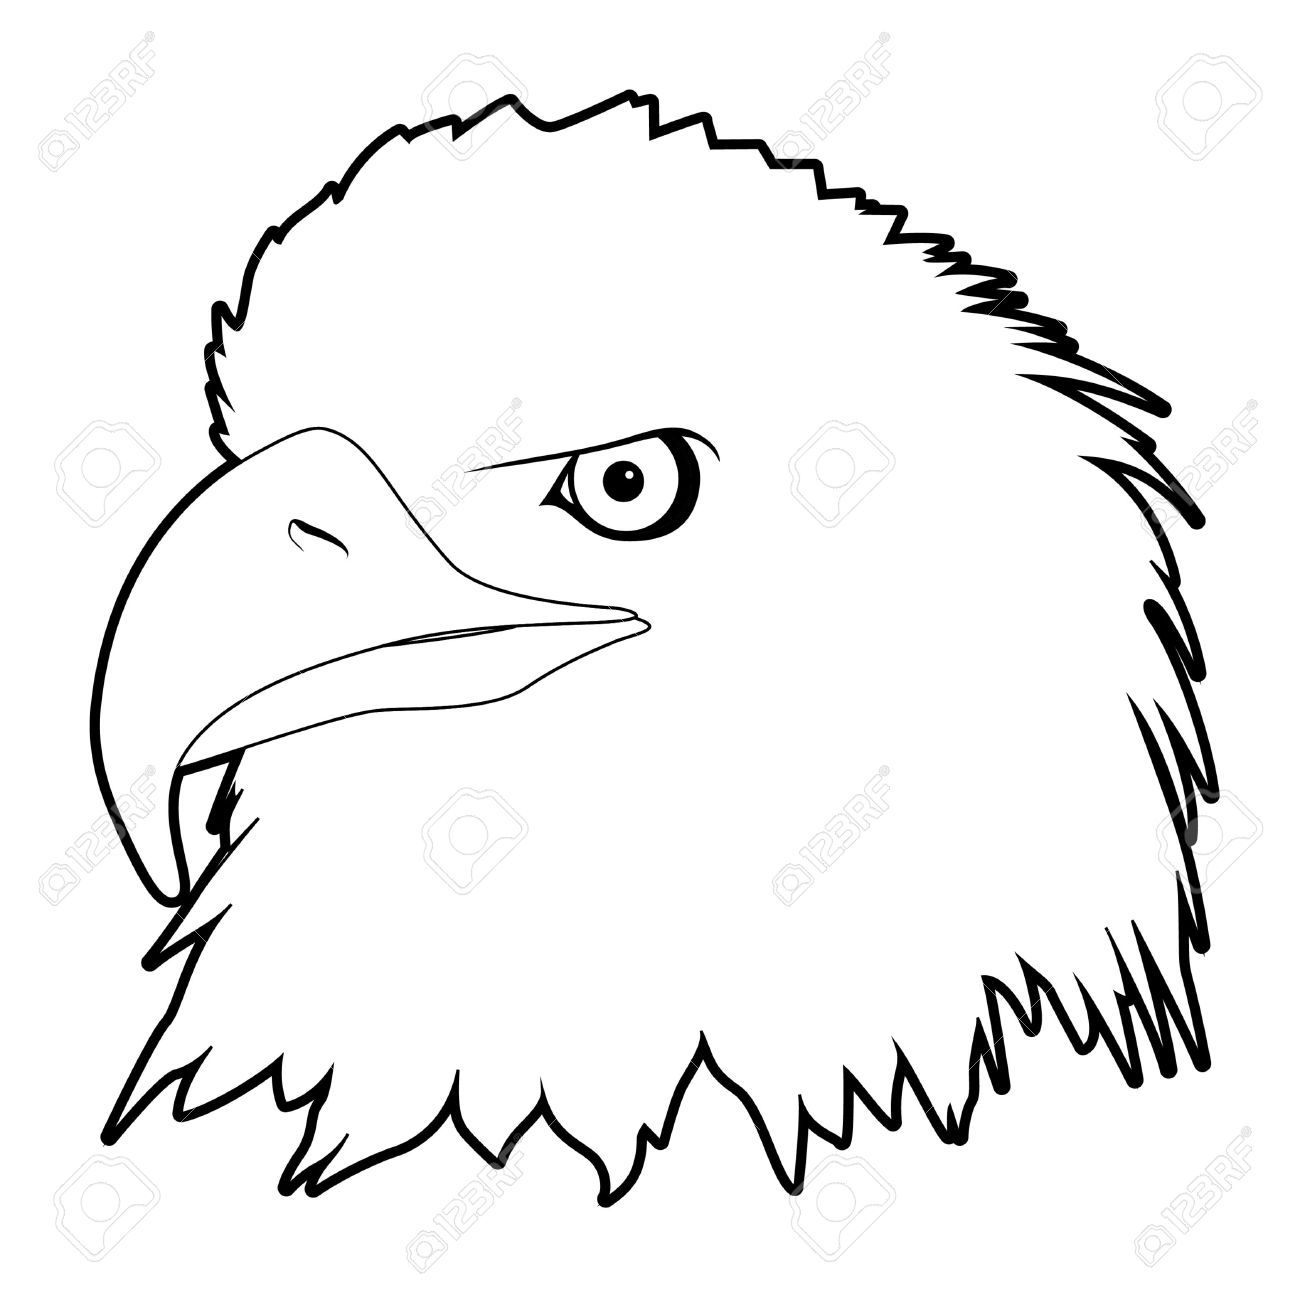 Outline Drawn Eagle Head On White Background Royalty Free